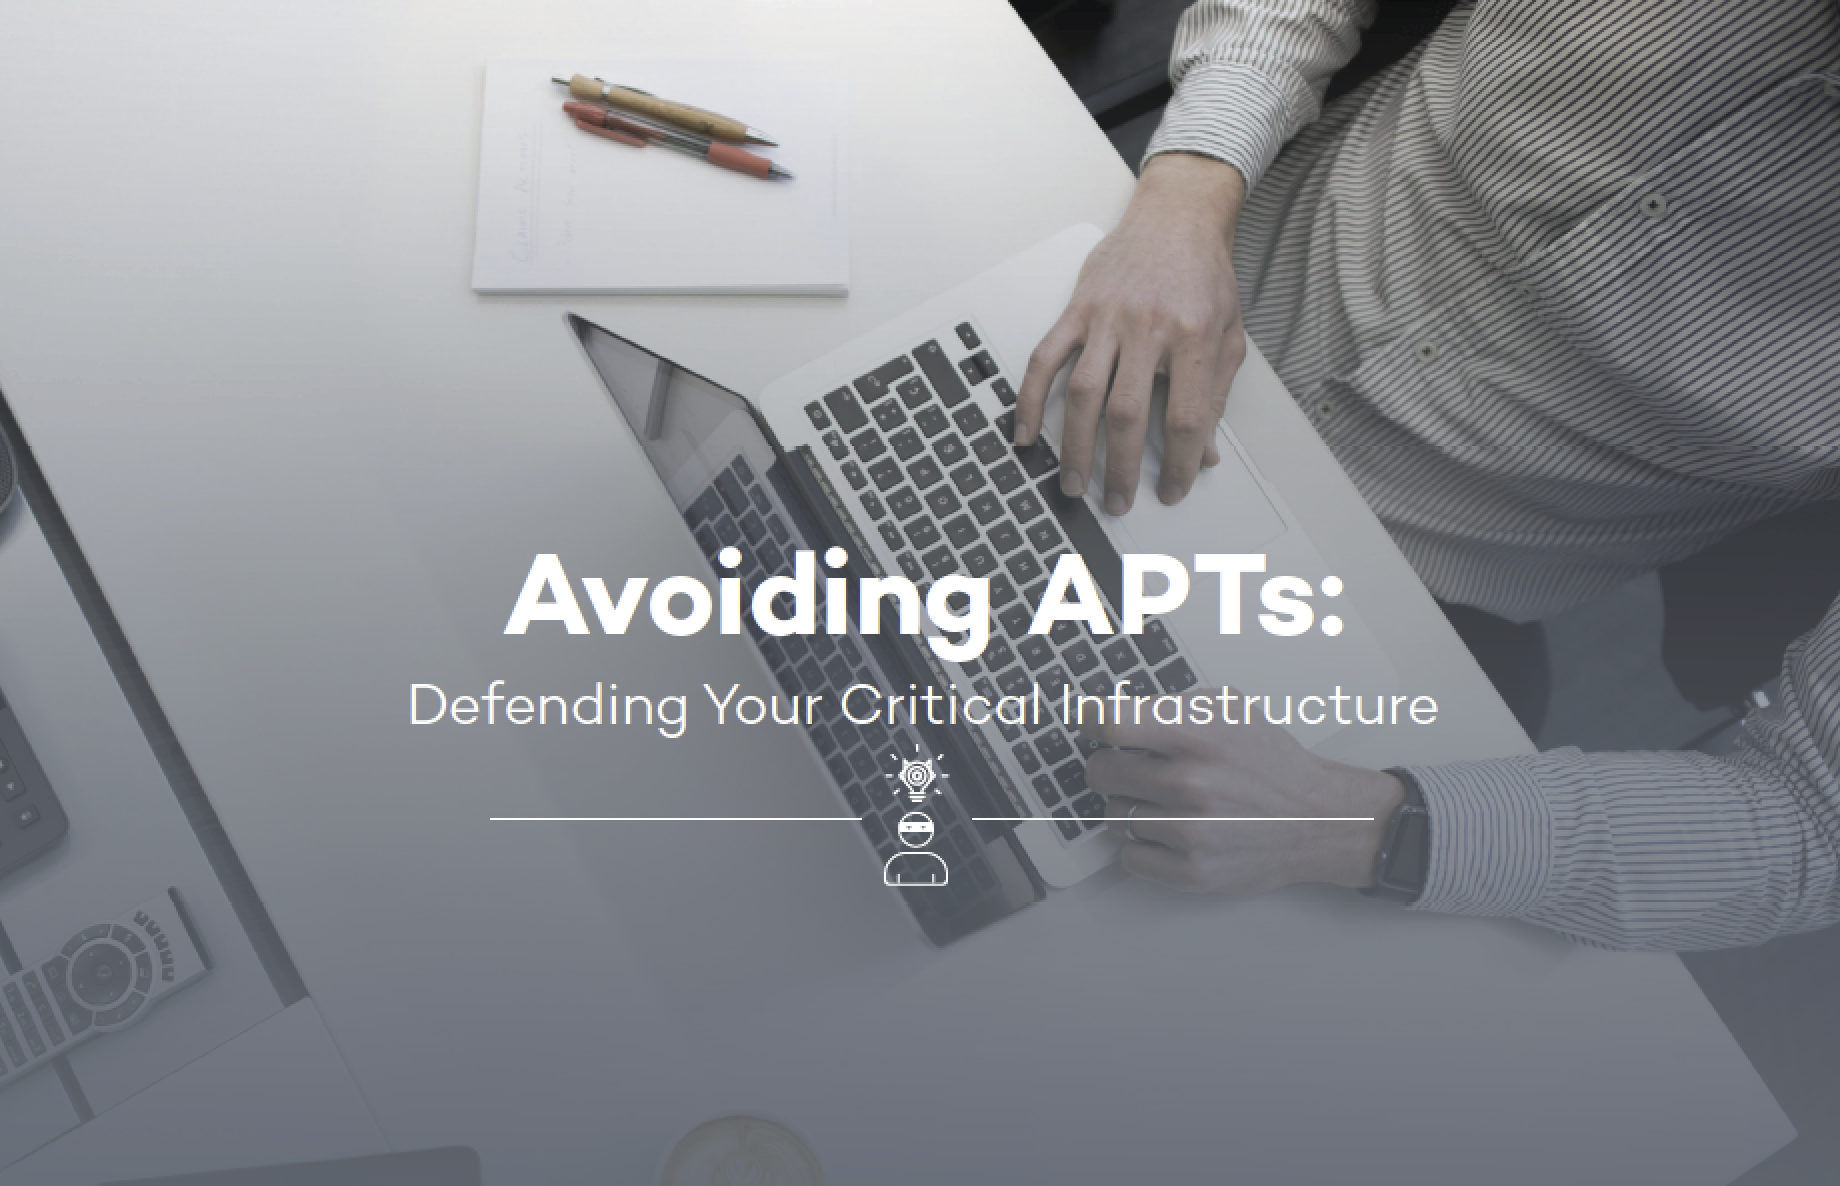 Avoiding APTs:Defending Your Critical Infrastructure